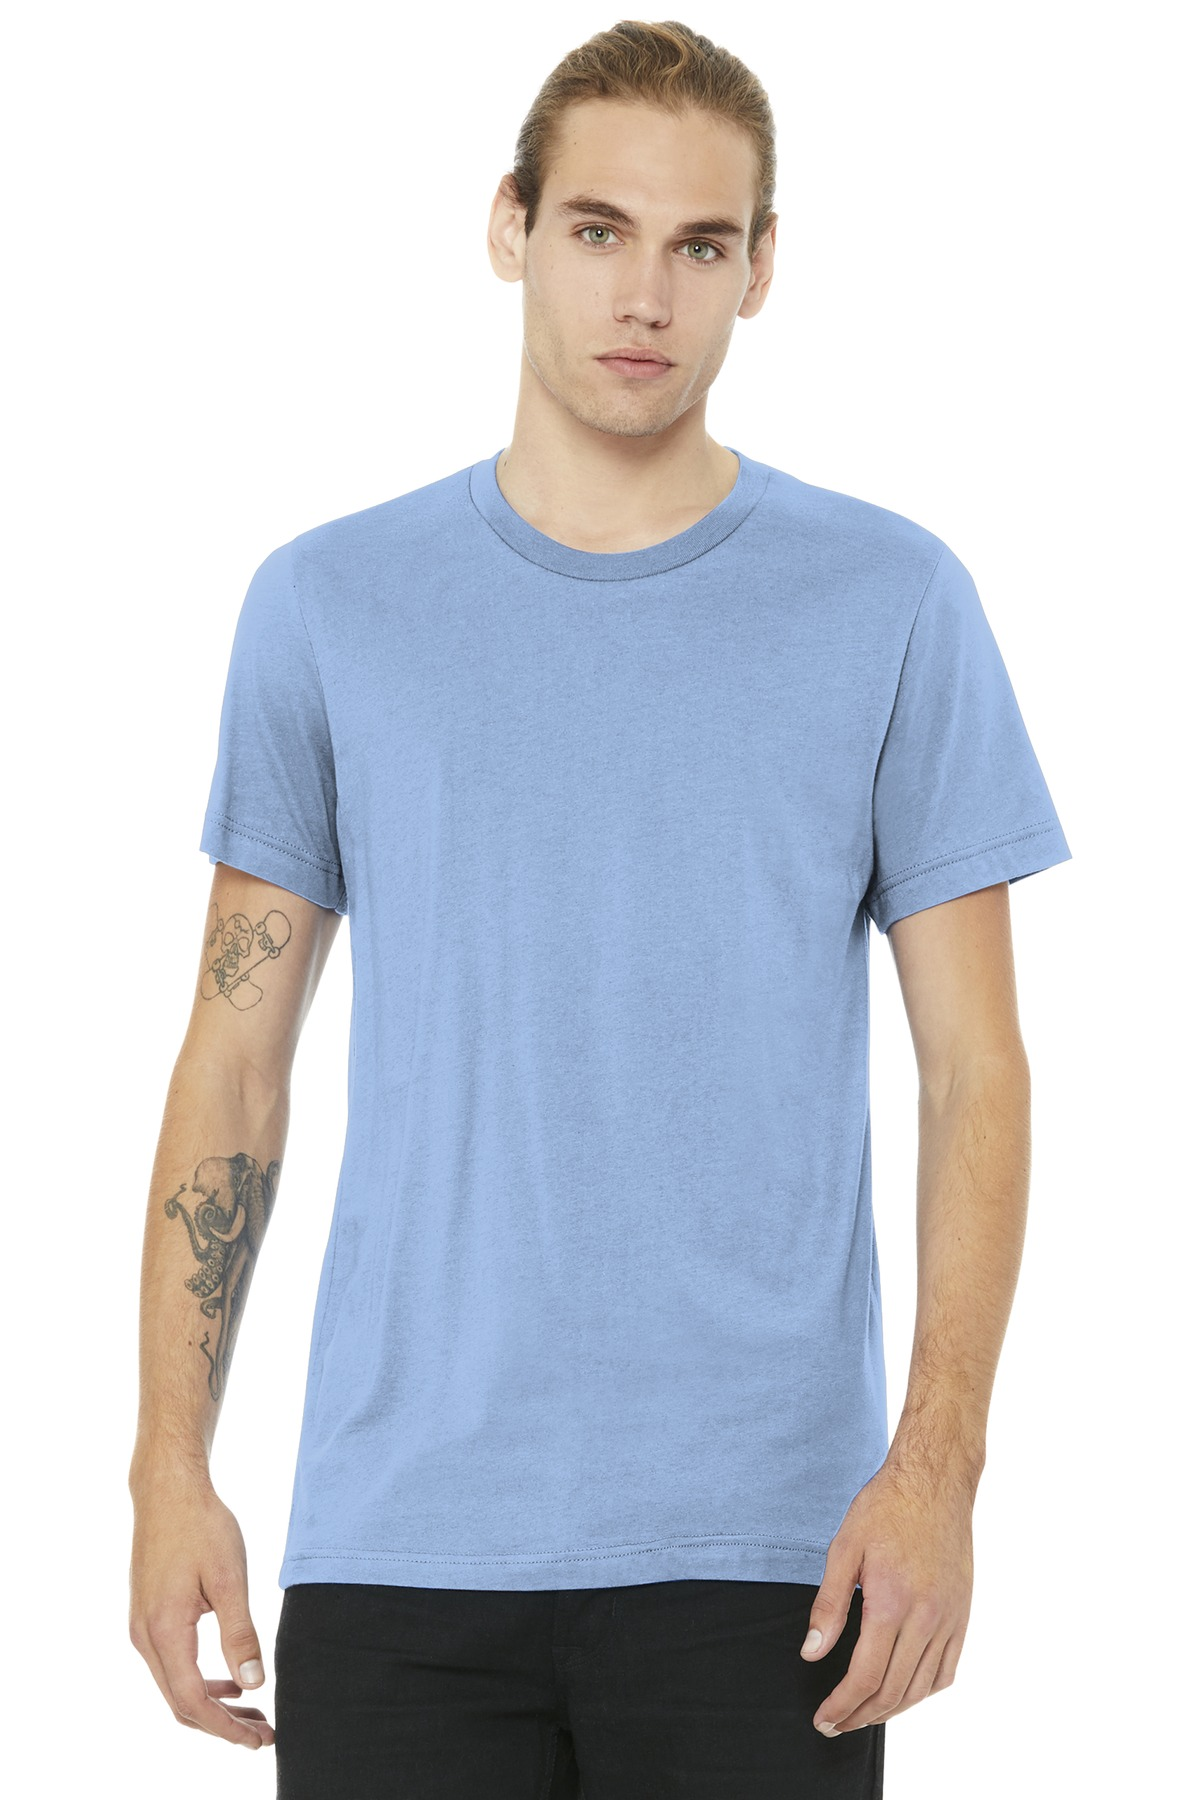 BELLA+CANVAS  ®  Unisex Jersey Short Sleeve Tee. BC3001 - Baby Blue